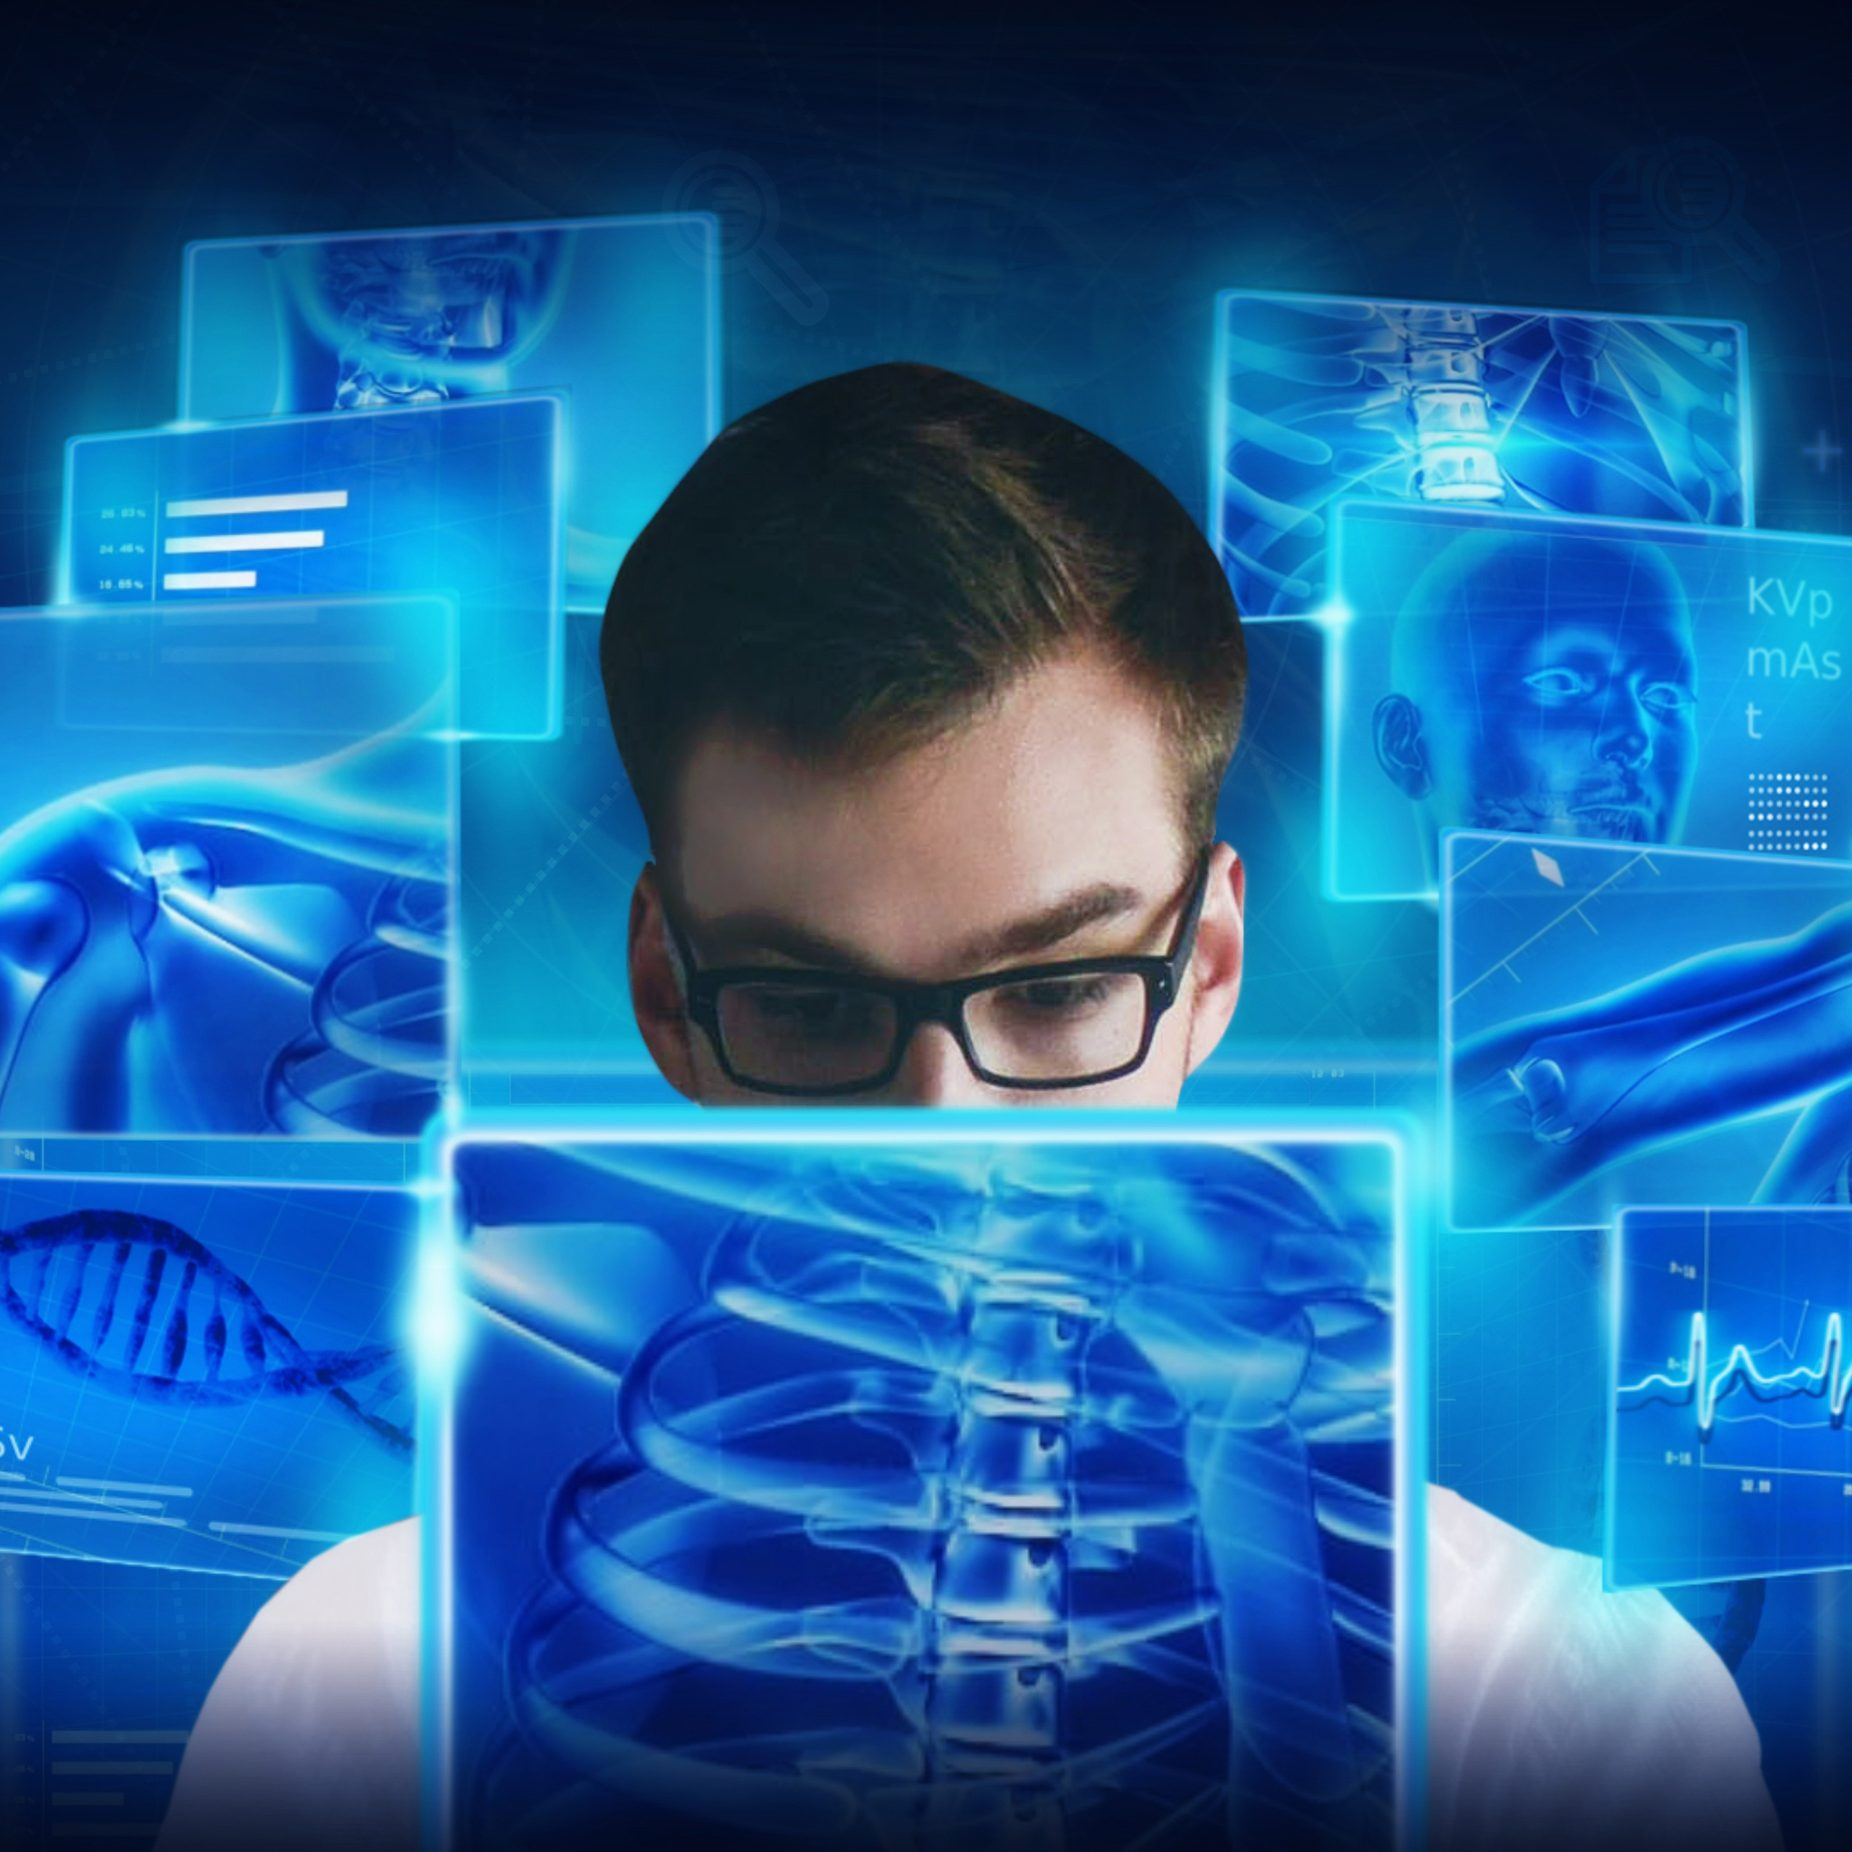 Medical Doctor Studying the Human Body - Concept